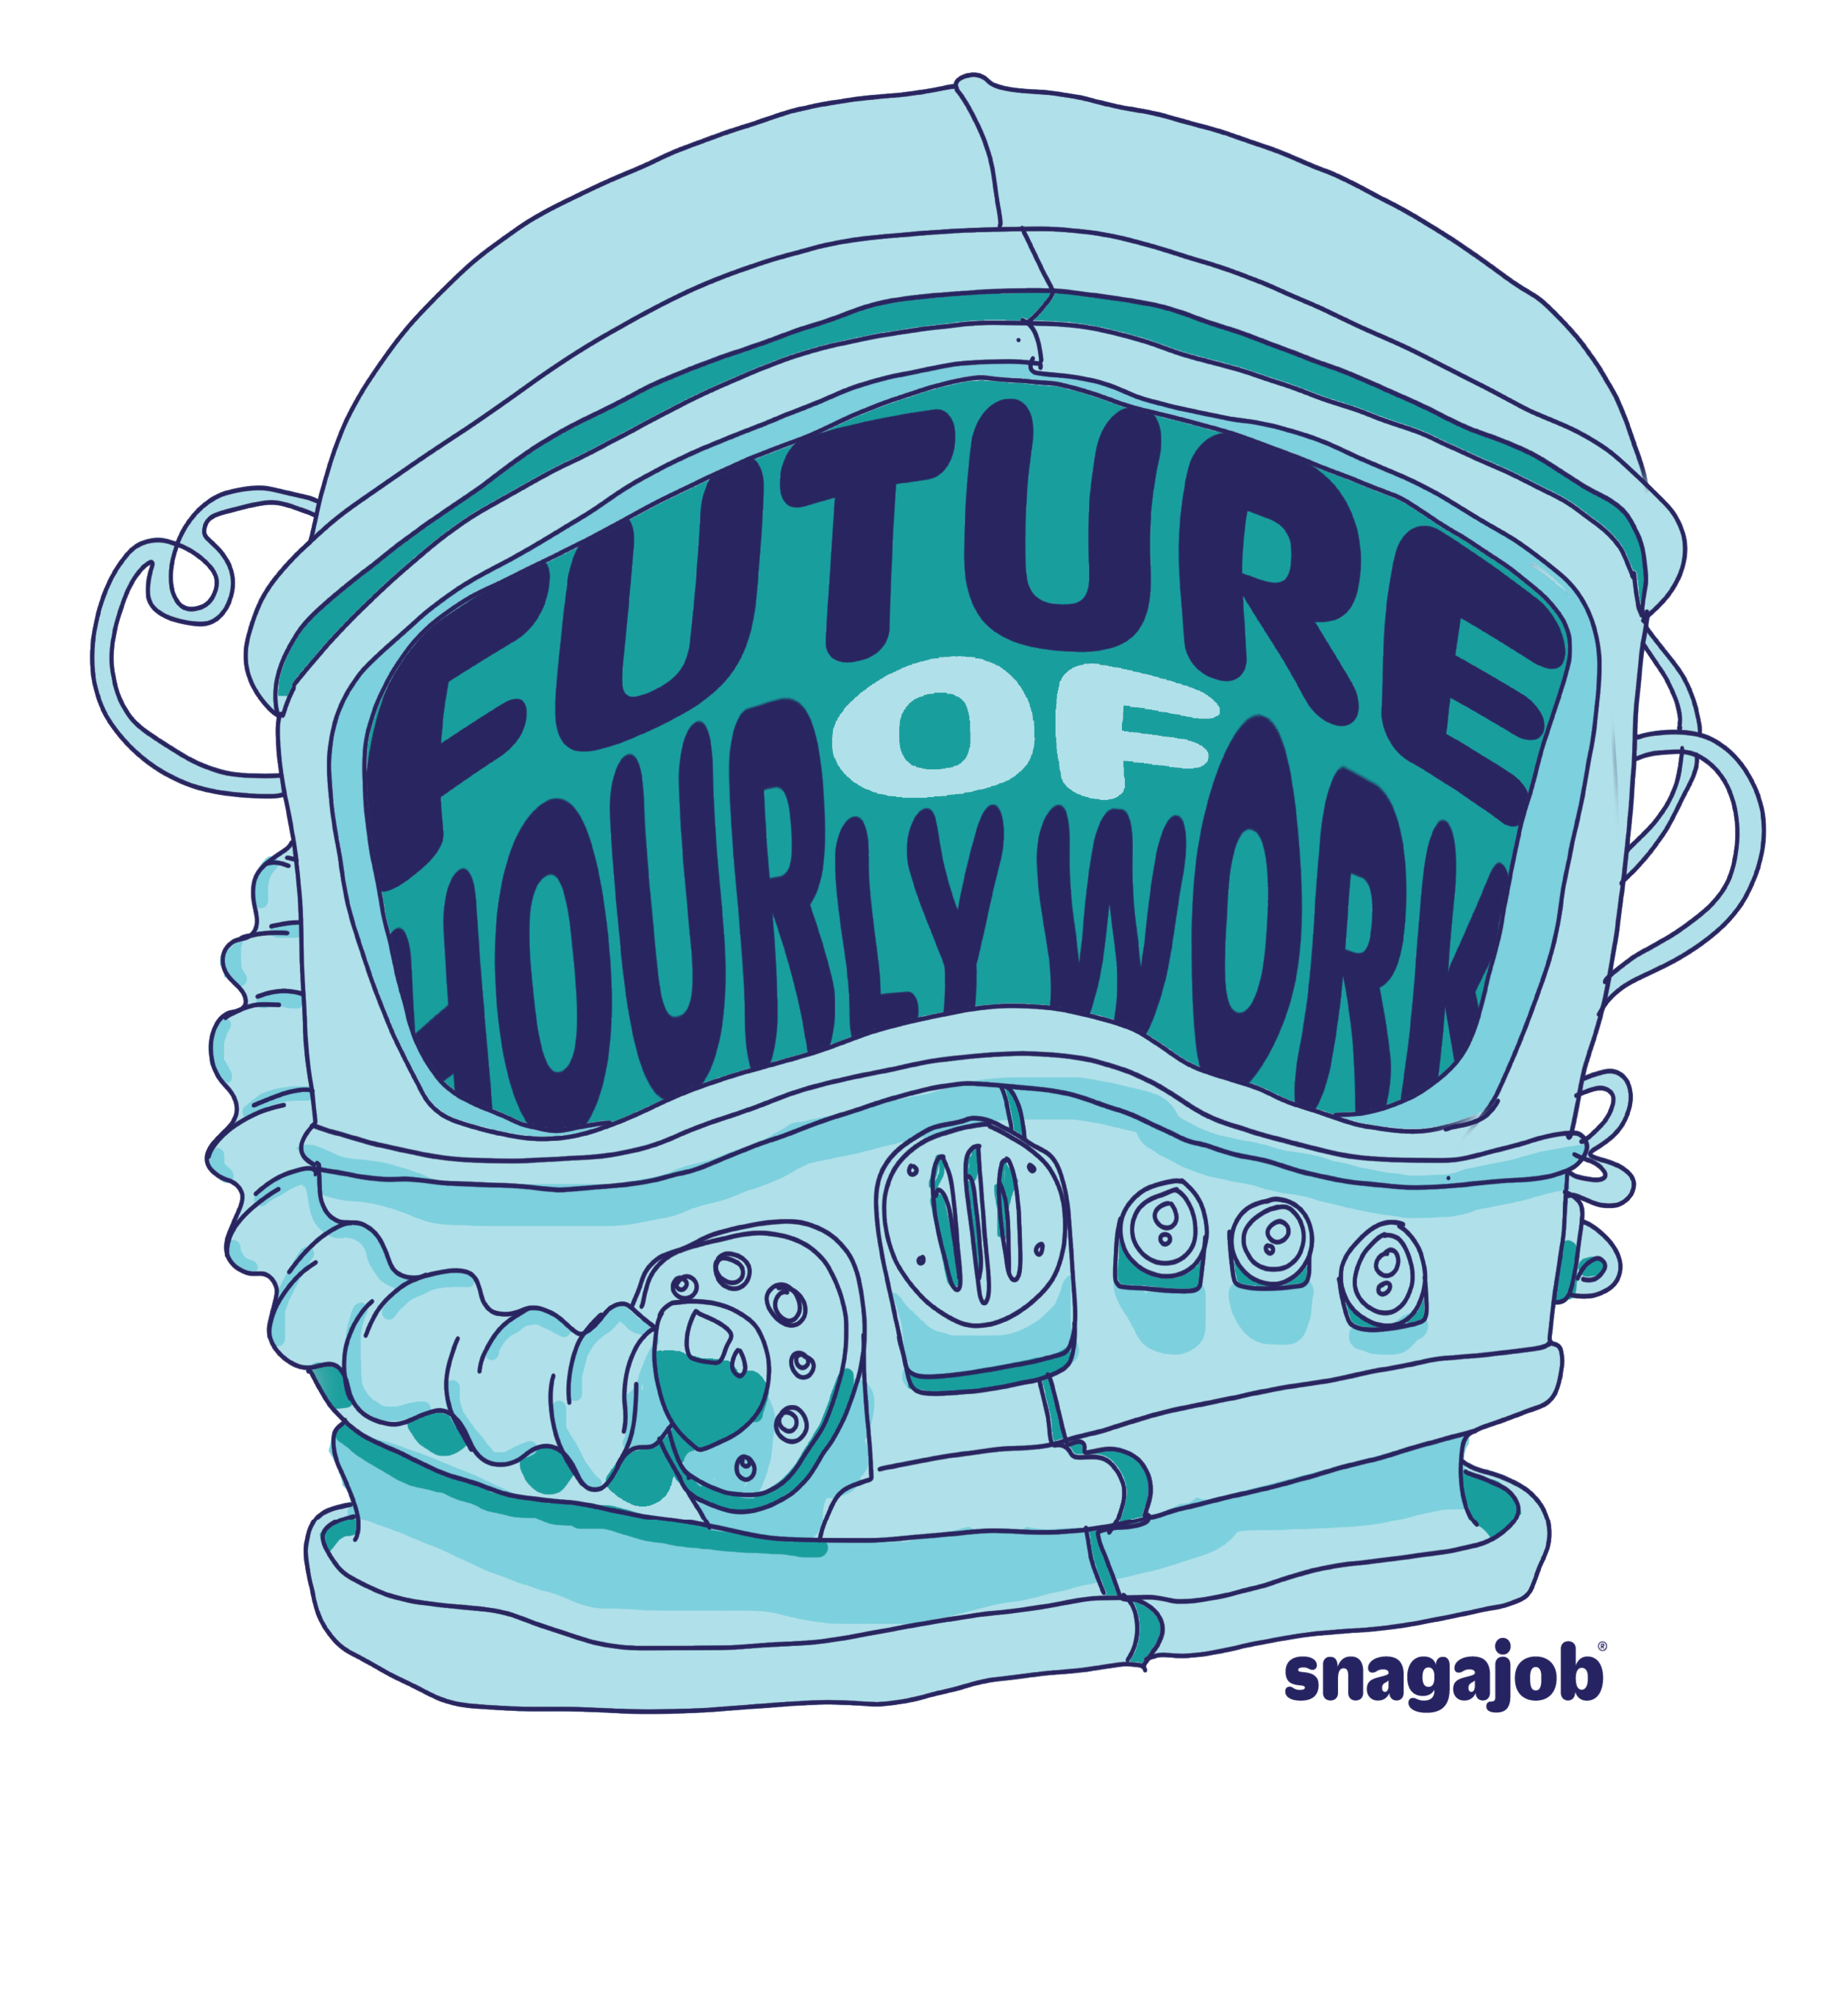 Hour Minds: The future of hourly work    Role: Event Brand Designer/Illustrator Digital/Physical